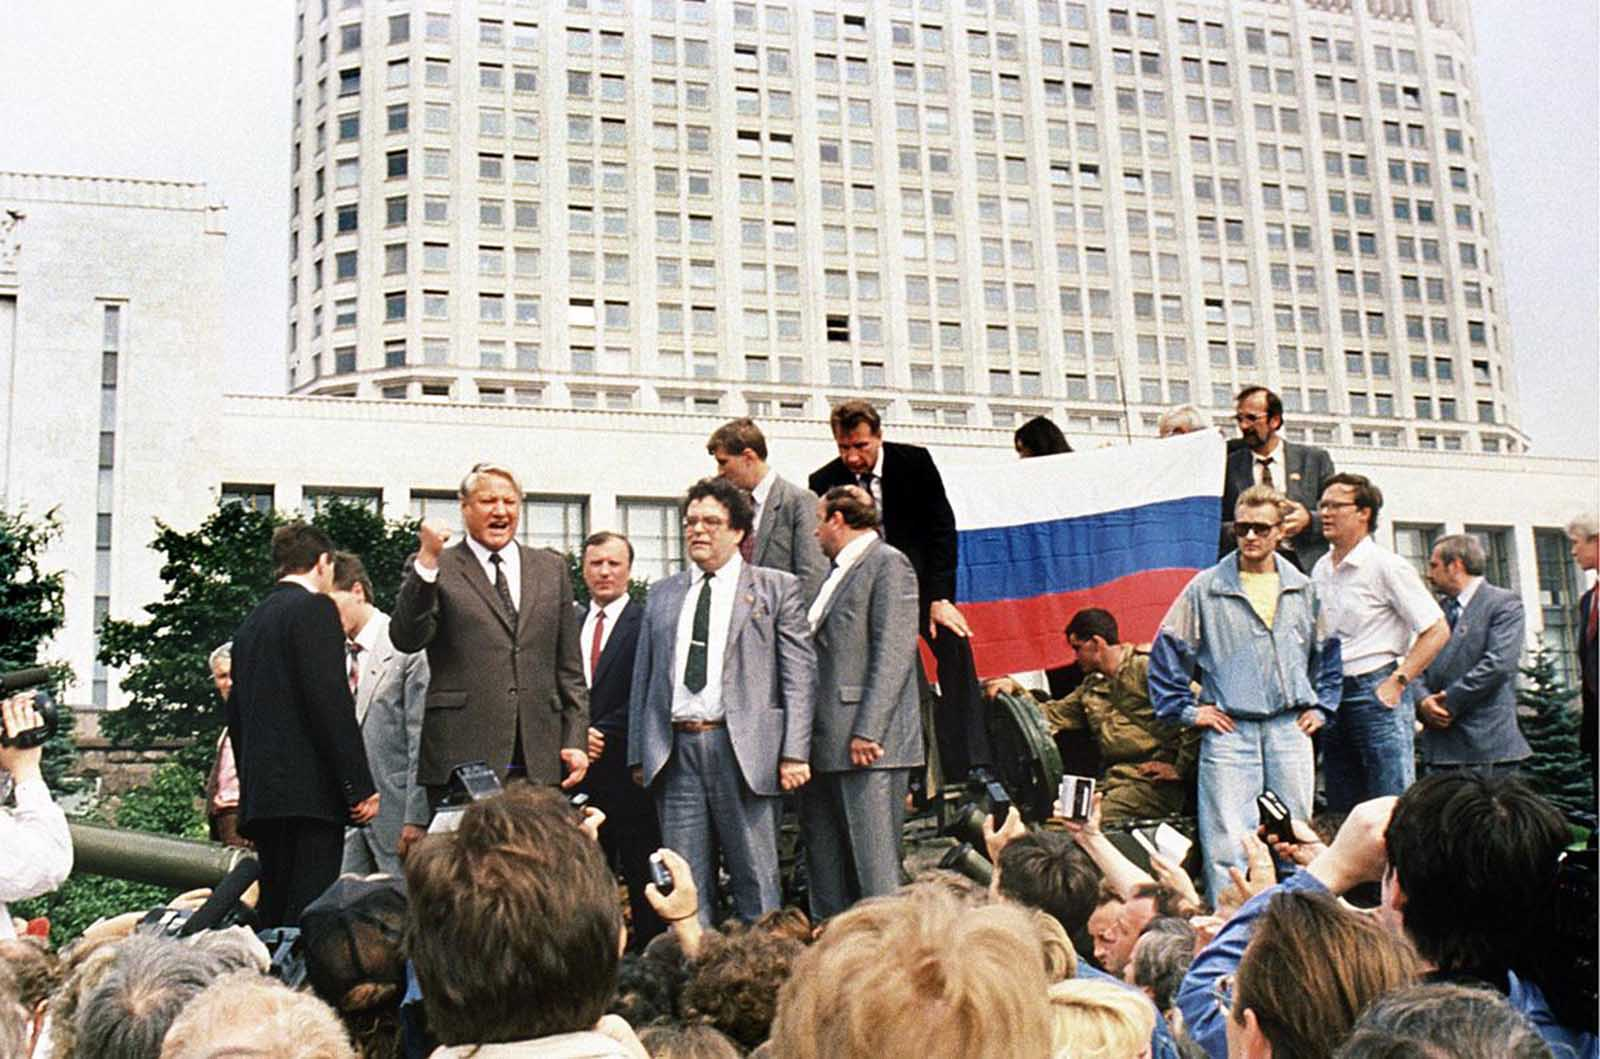 Russian President Boris Yeltsin (left) stands on top of an armored vehicle parked in front of the Russian Federation building as supporters hold a Russian federation flag on August 19, 1991, during a coup attempt. Yeltsin addressed a crowd of supporters calling for a general strike.